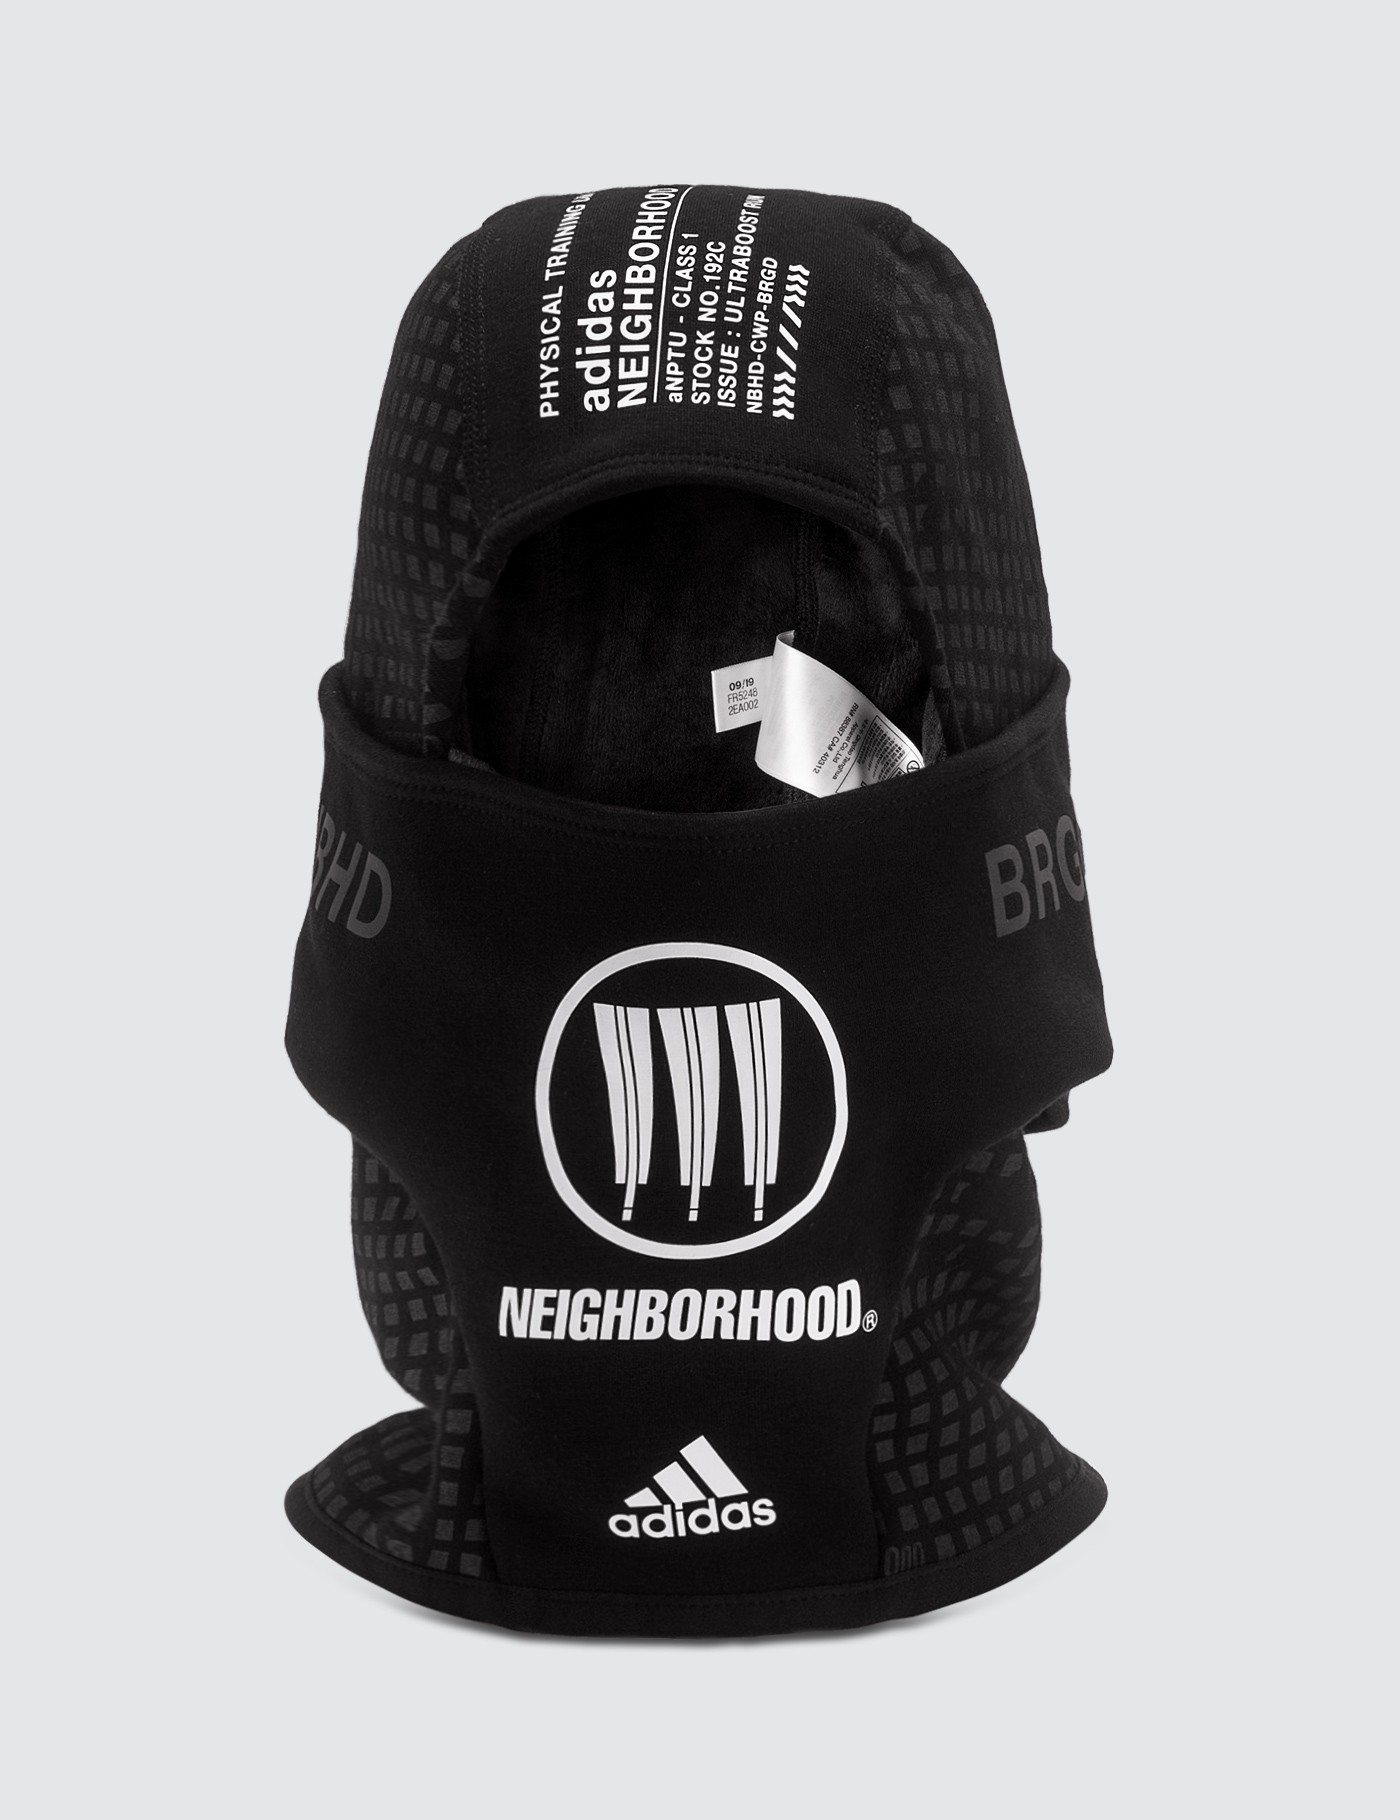 Adidas Originals Adidas x NEIGHBORHOOD Balaclava